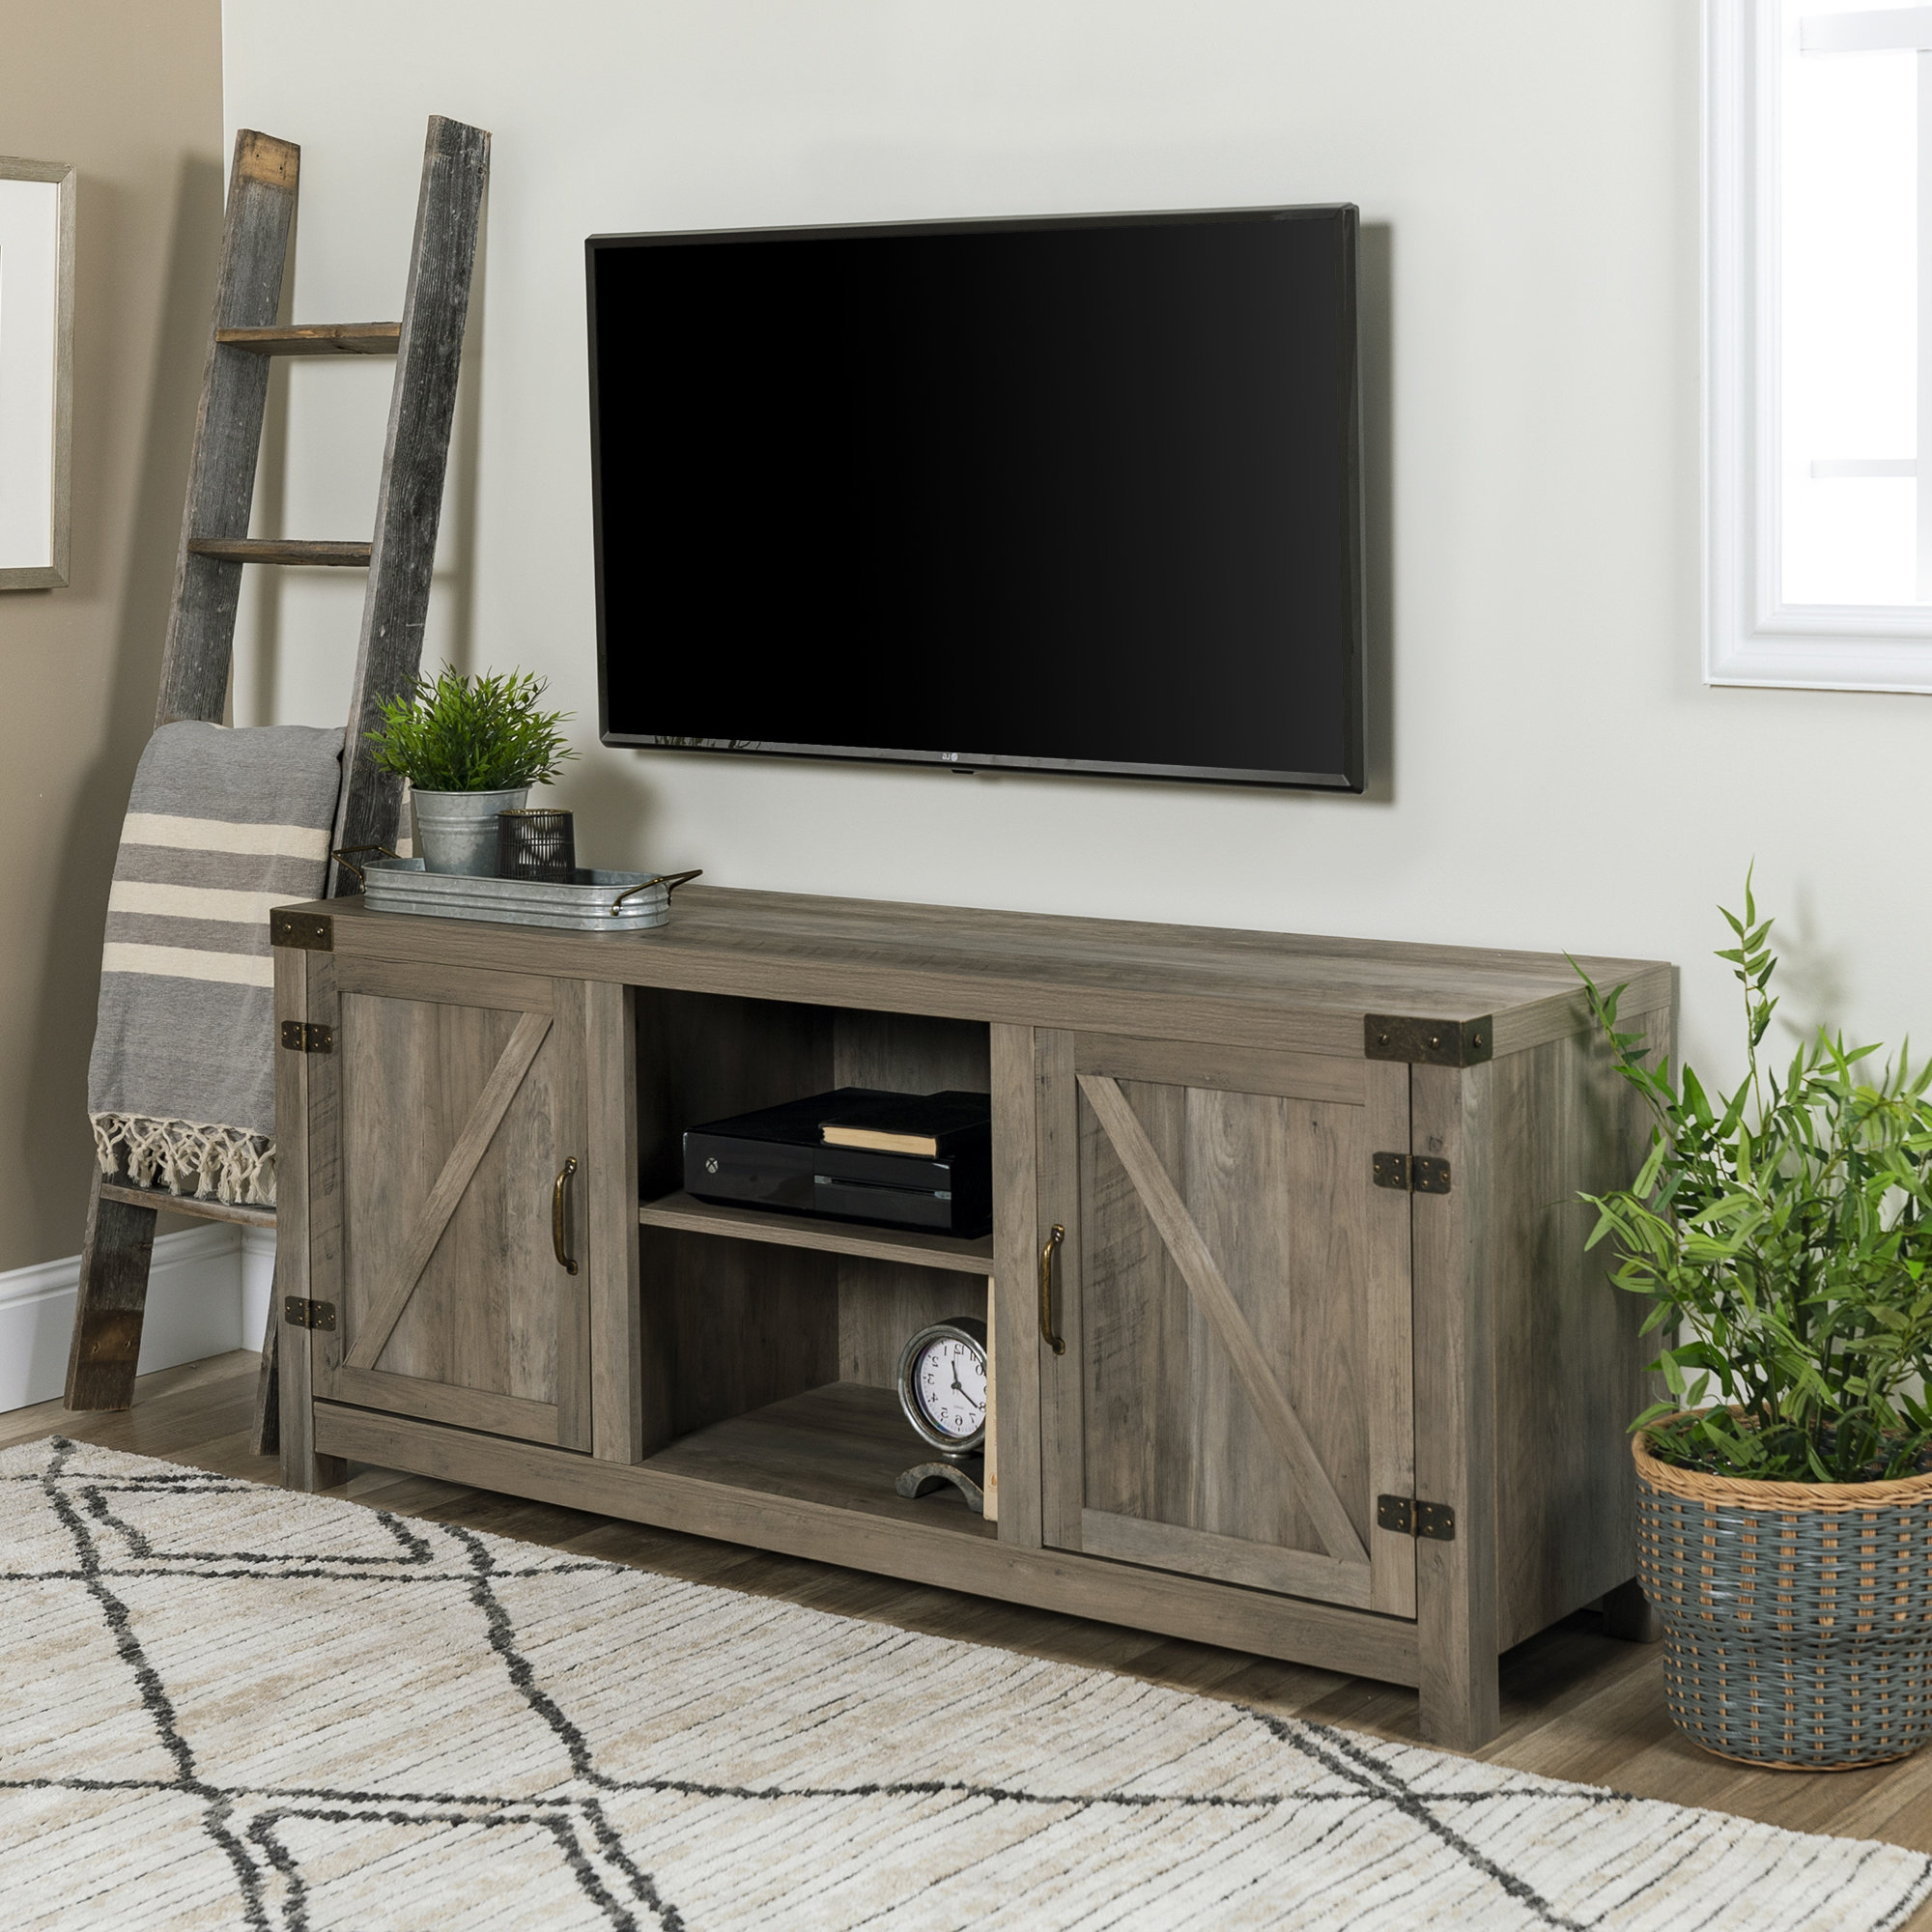 Well Liked Tv Stands For Tube Tvs Within Tv Stands You'll Love (View 7 of 20)